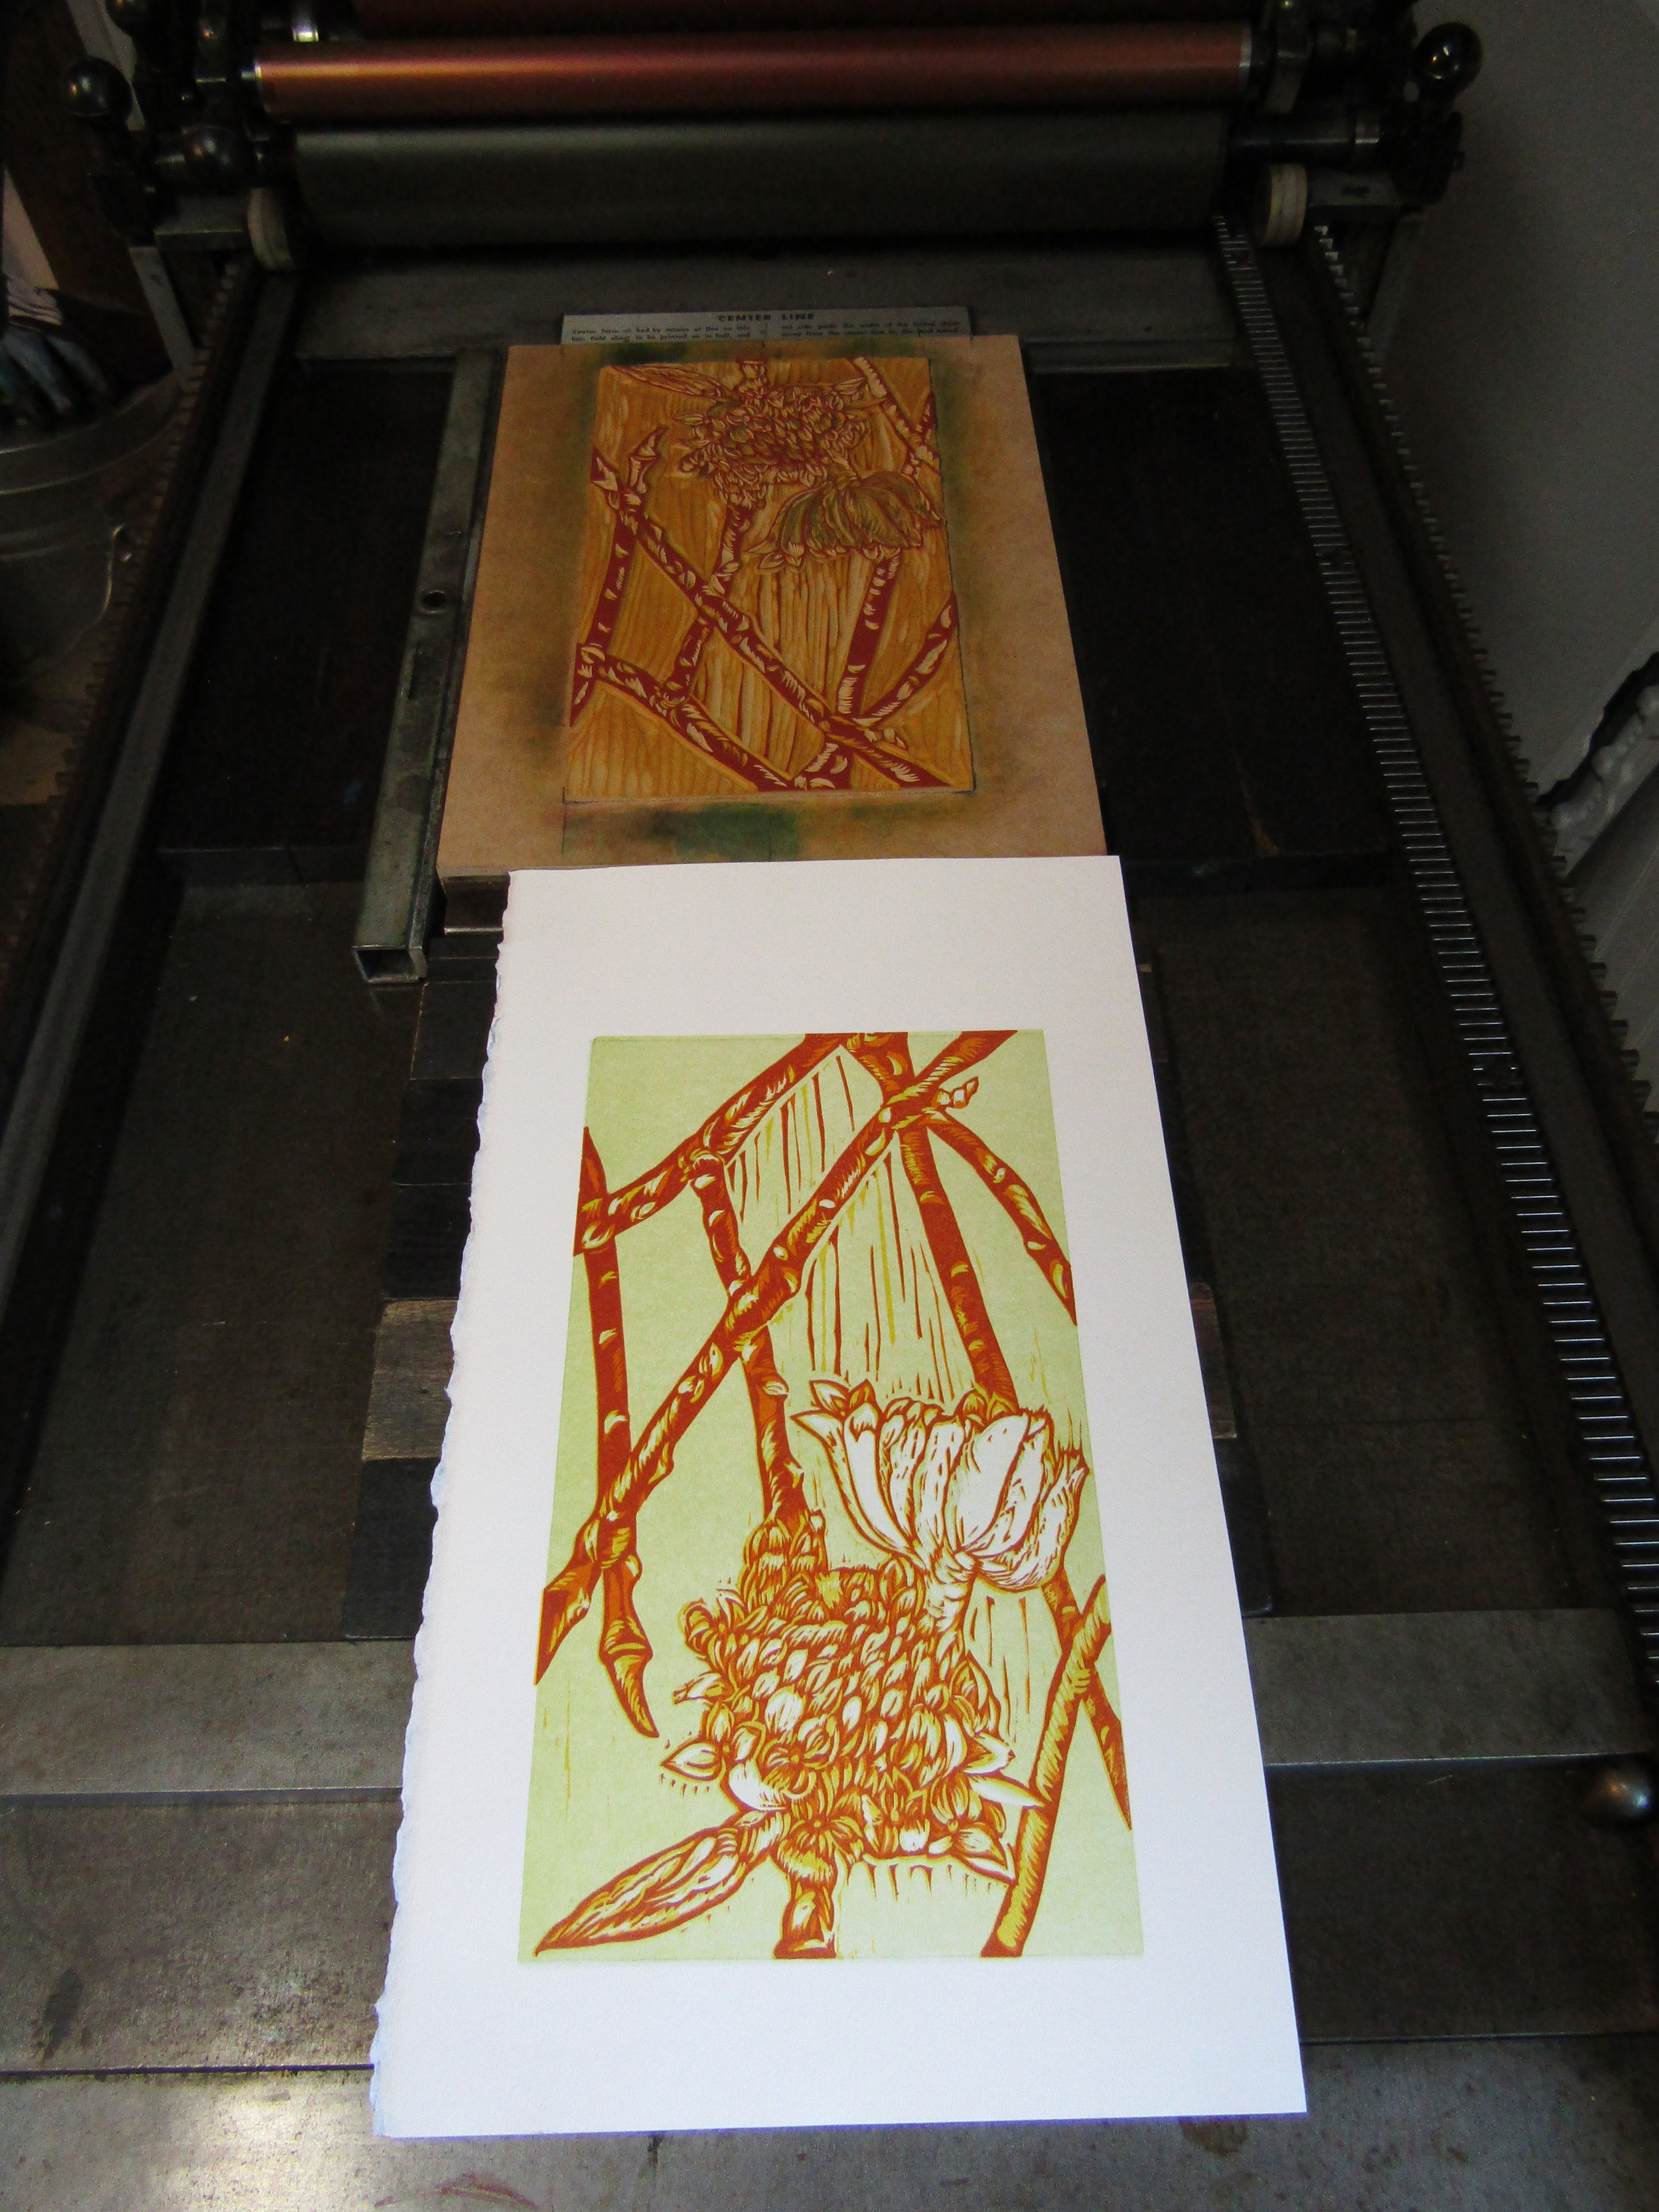 This print was fairly difficult to carve, register, and print due to the details of the flowers and buds.